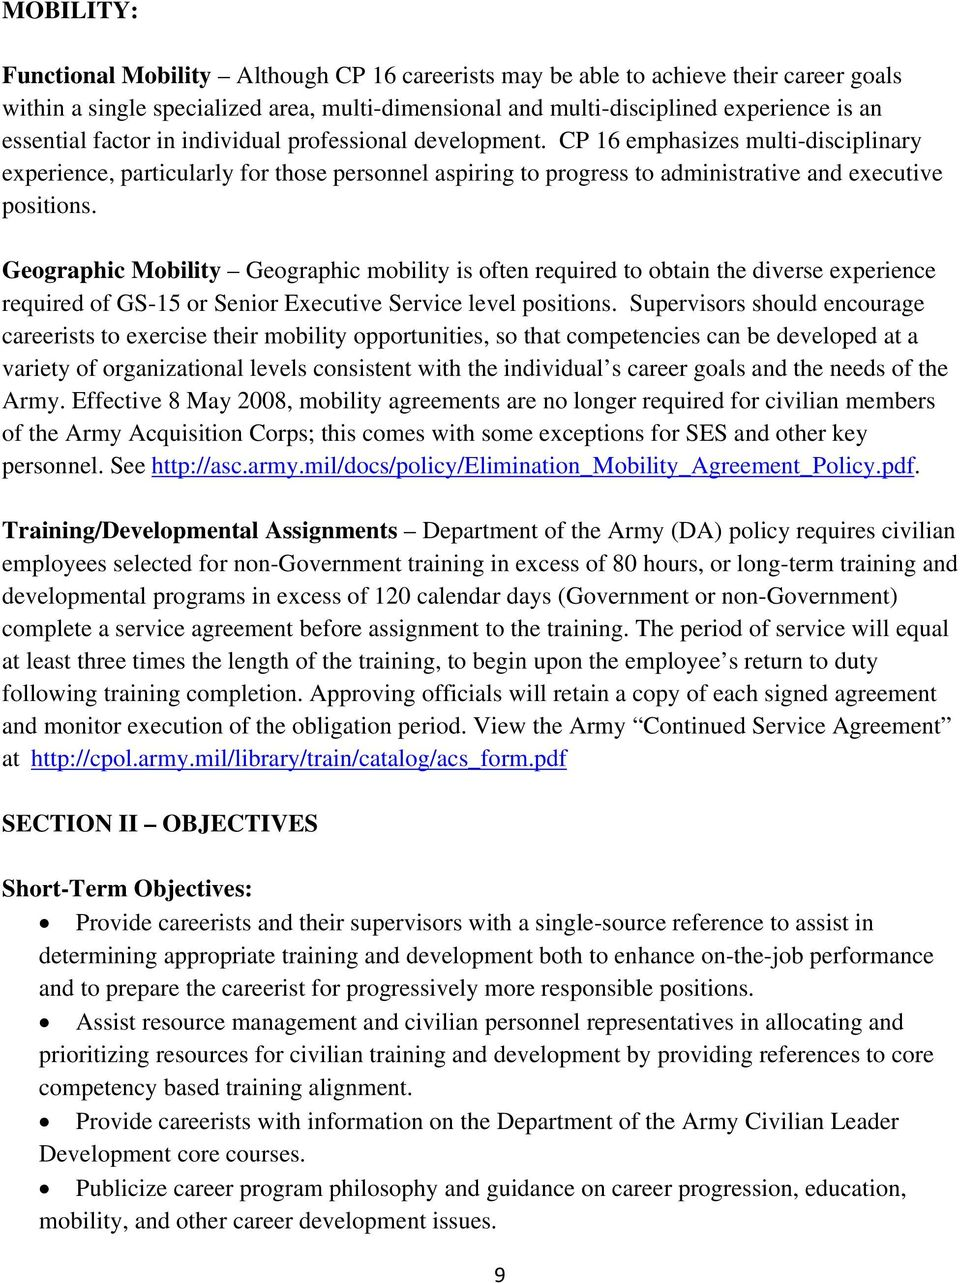 Geographic Mobility Geographic mobility is often required to obtain the diverse experience required of GS-15 or Senior Executive Service level positions.